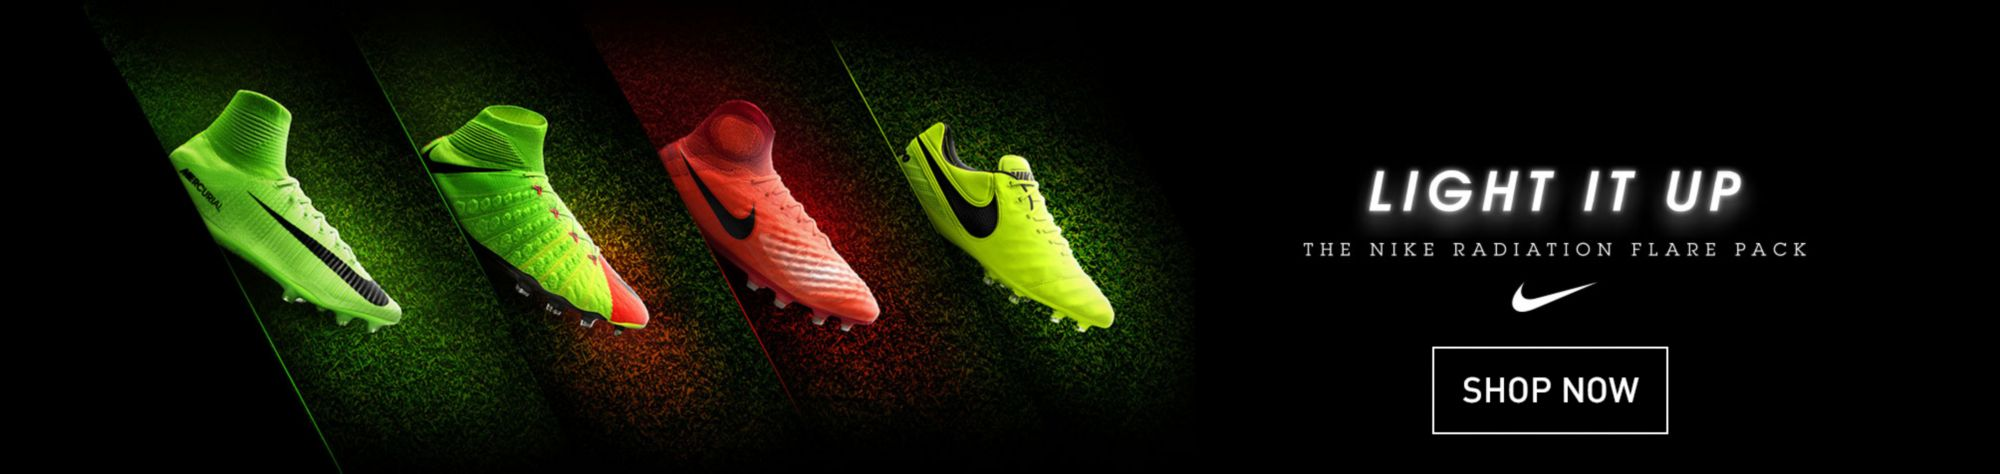 Nike Radiation Flare Pack Soccer Cleats